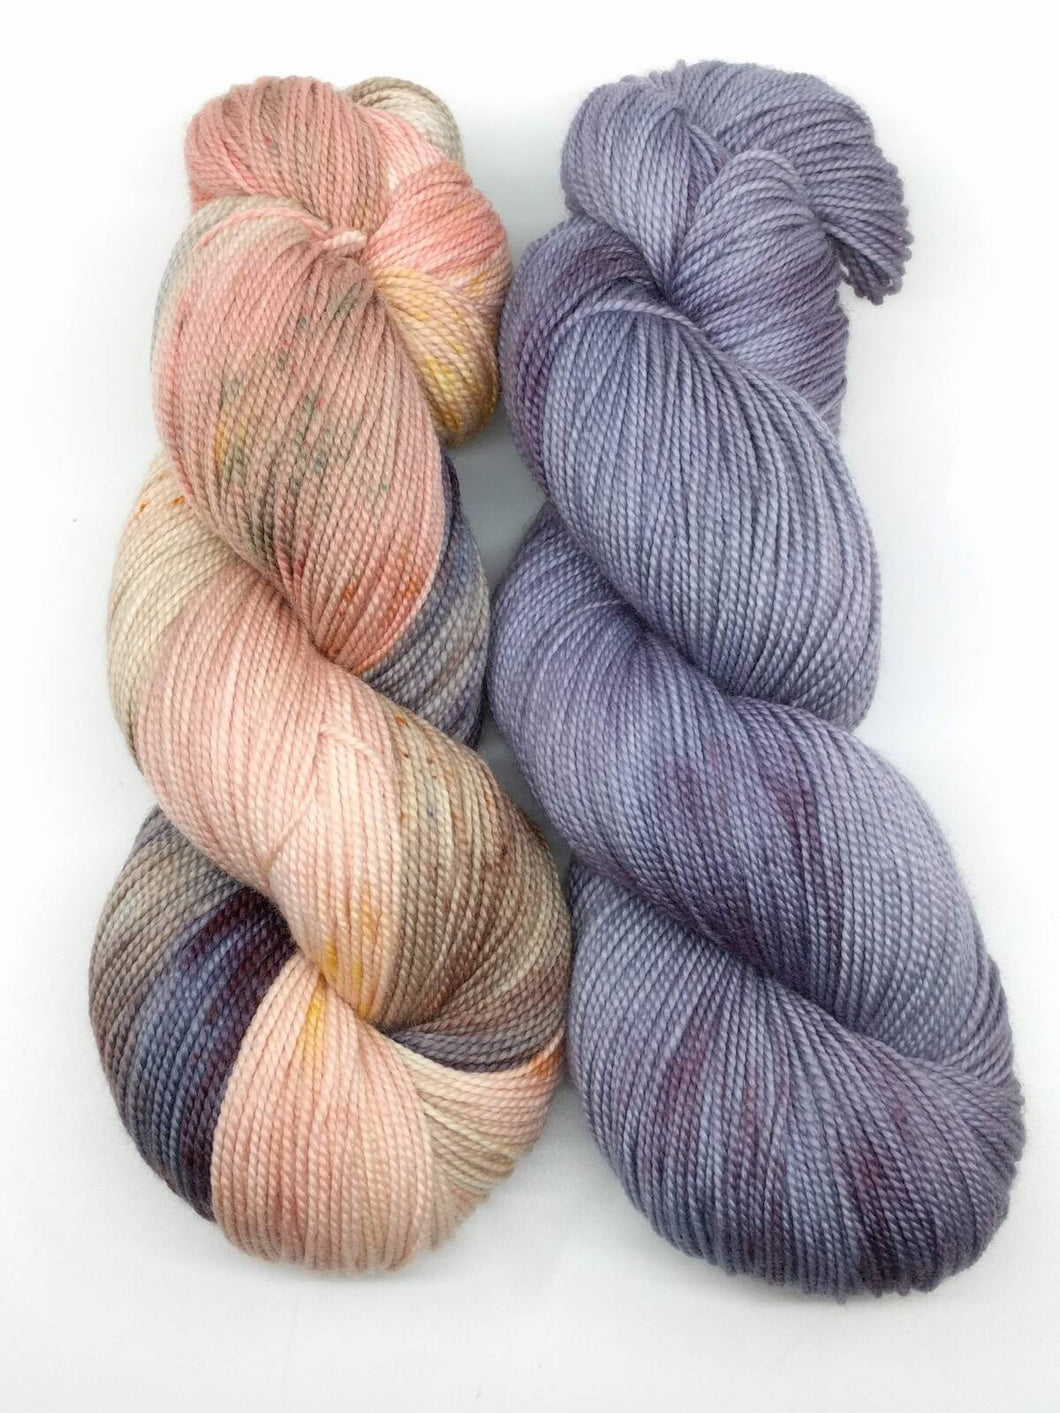 ROCKY MOUNTAIN- 2 skein set